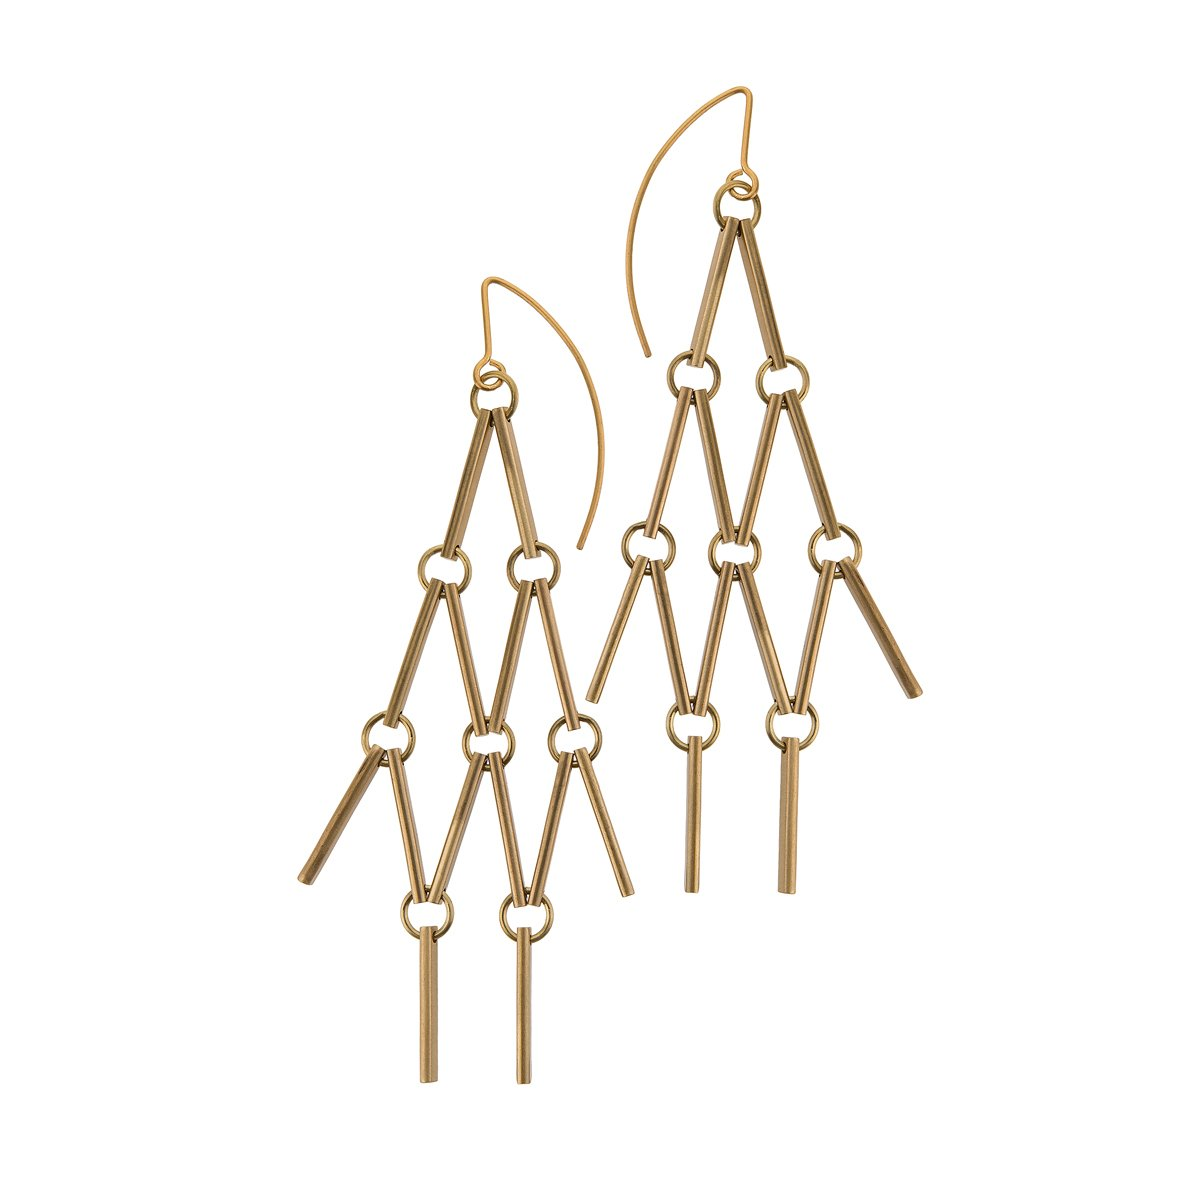 Earrings from Astro collection - AK32-1